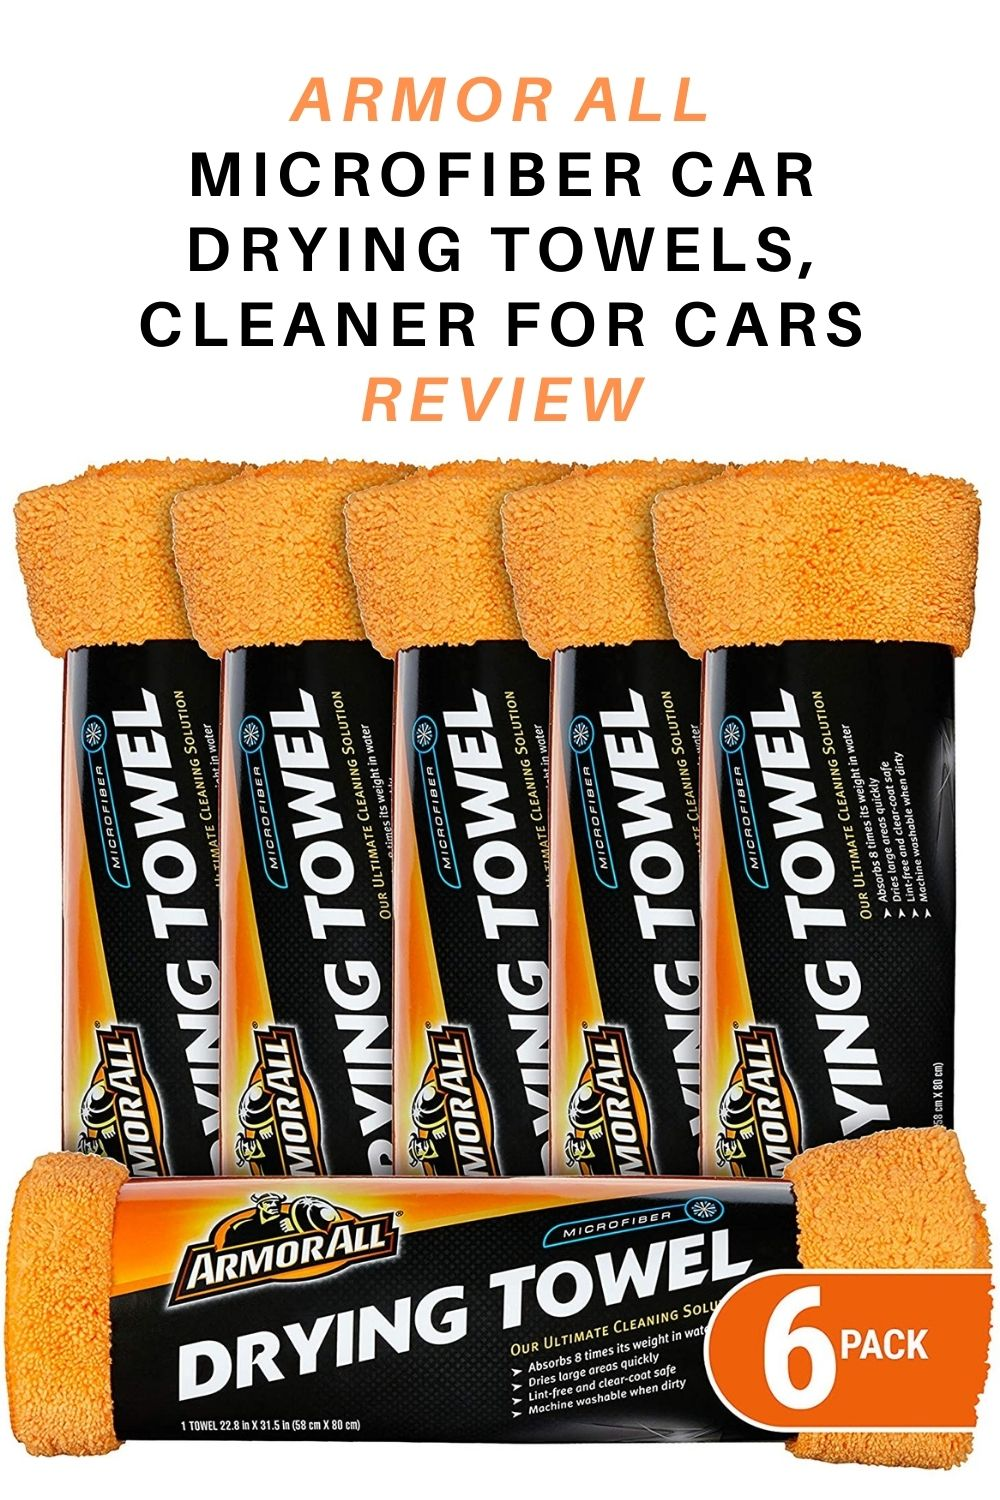 Armor All Microfiber Car Drying Towels, Cleaner for Cars Review